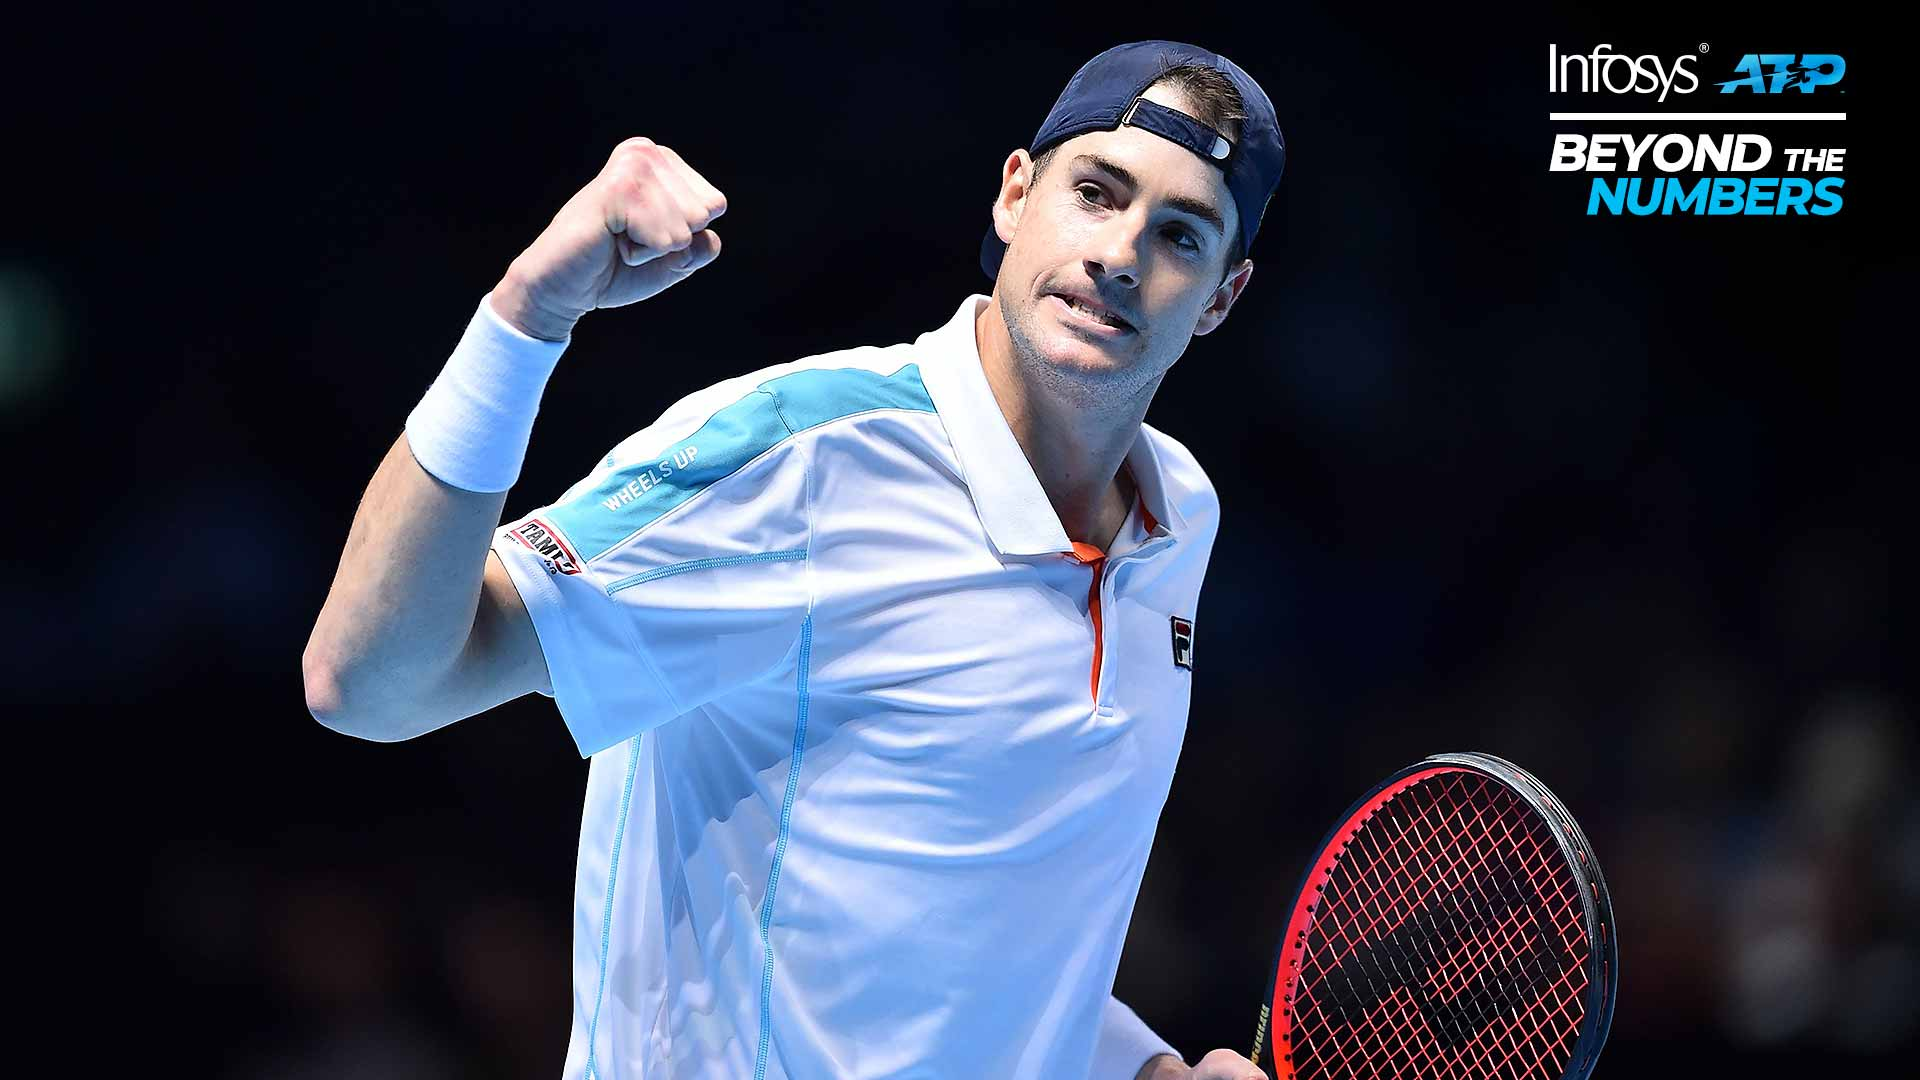 John Isner aces break points